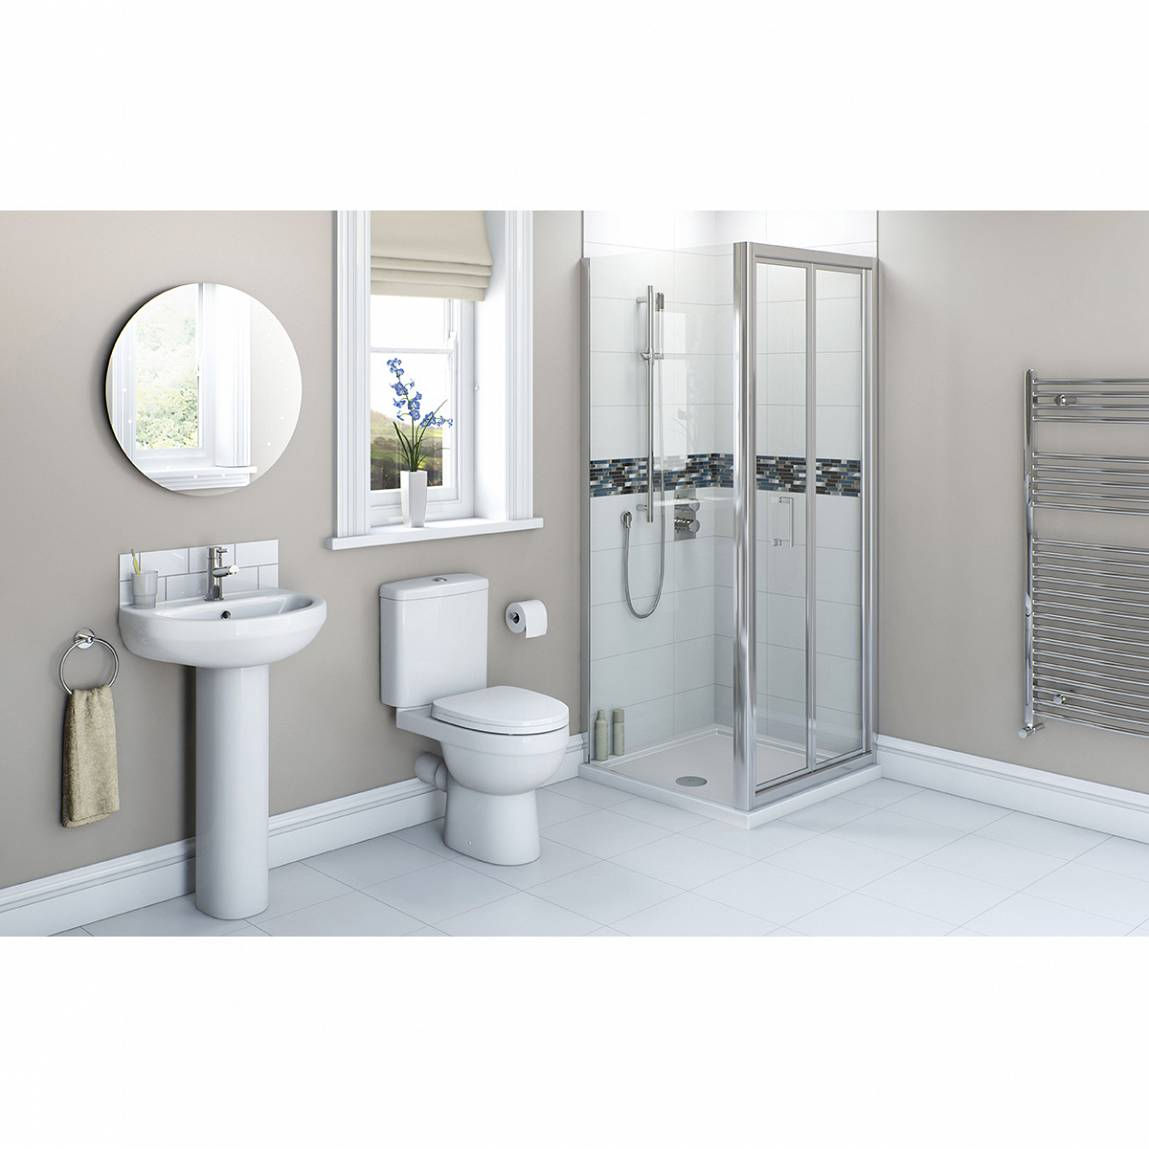 Image of Energy Bathroom set with Bifold Enclosure & Tray 900